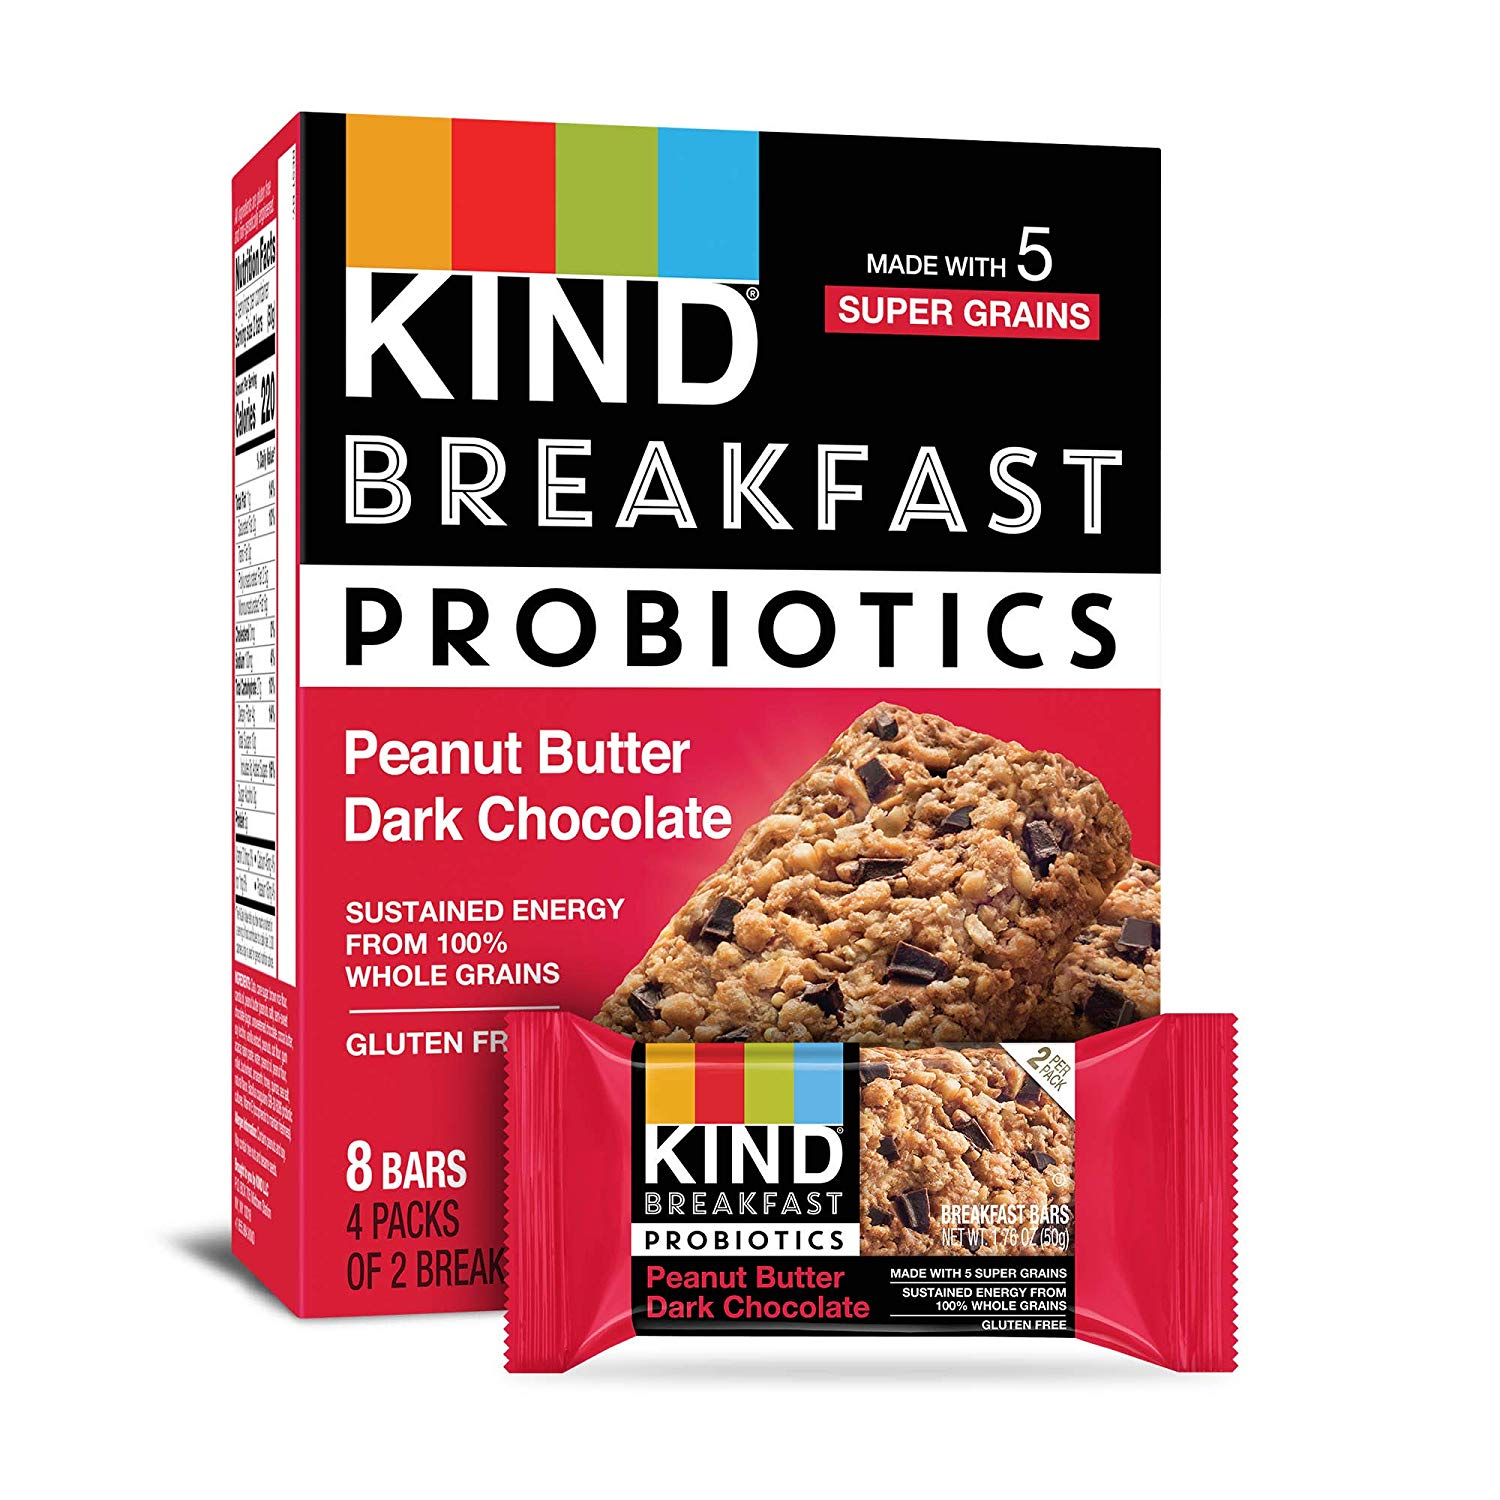 kind breakfast probiotic bar